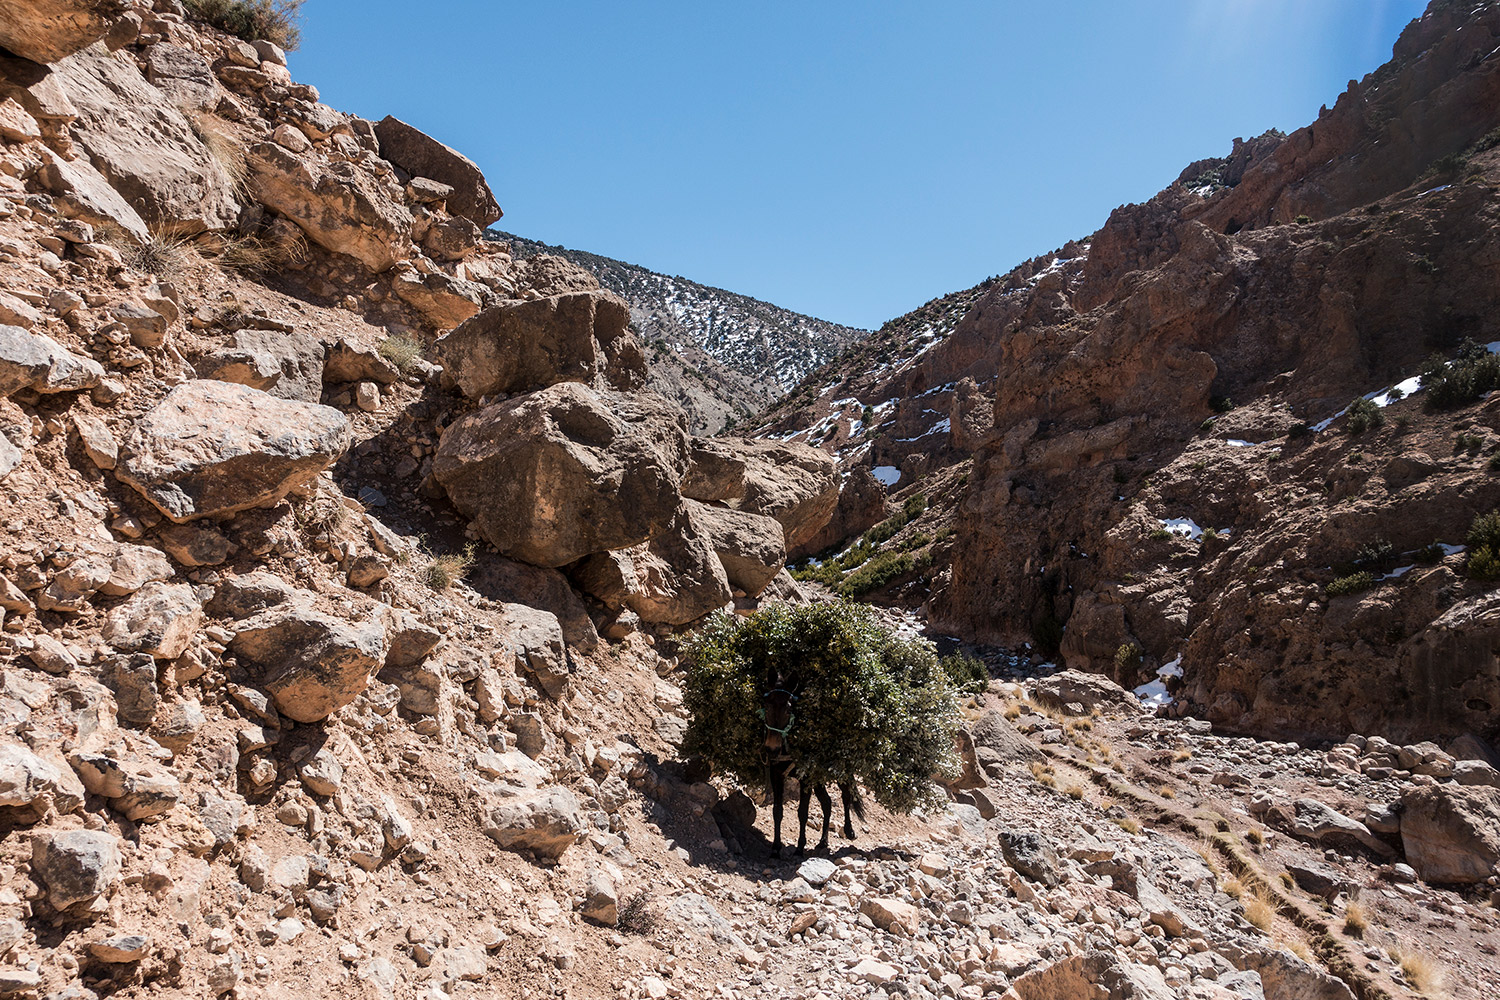 Atlas Mountains Morocco - Earning the Landscape